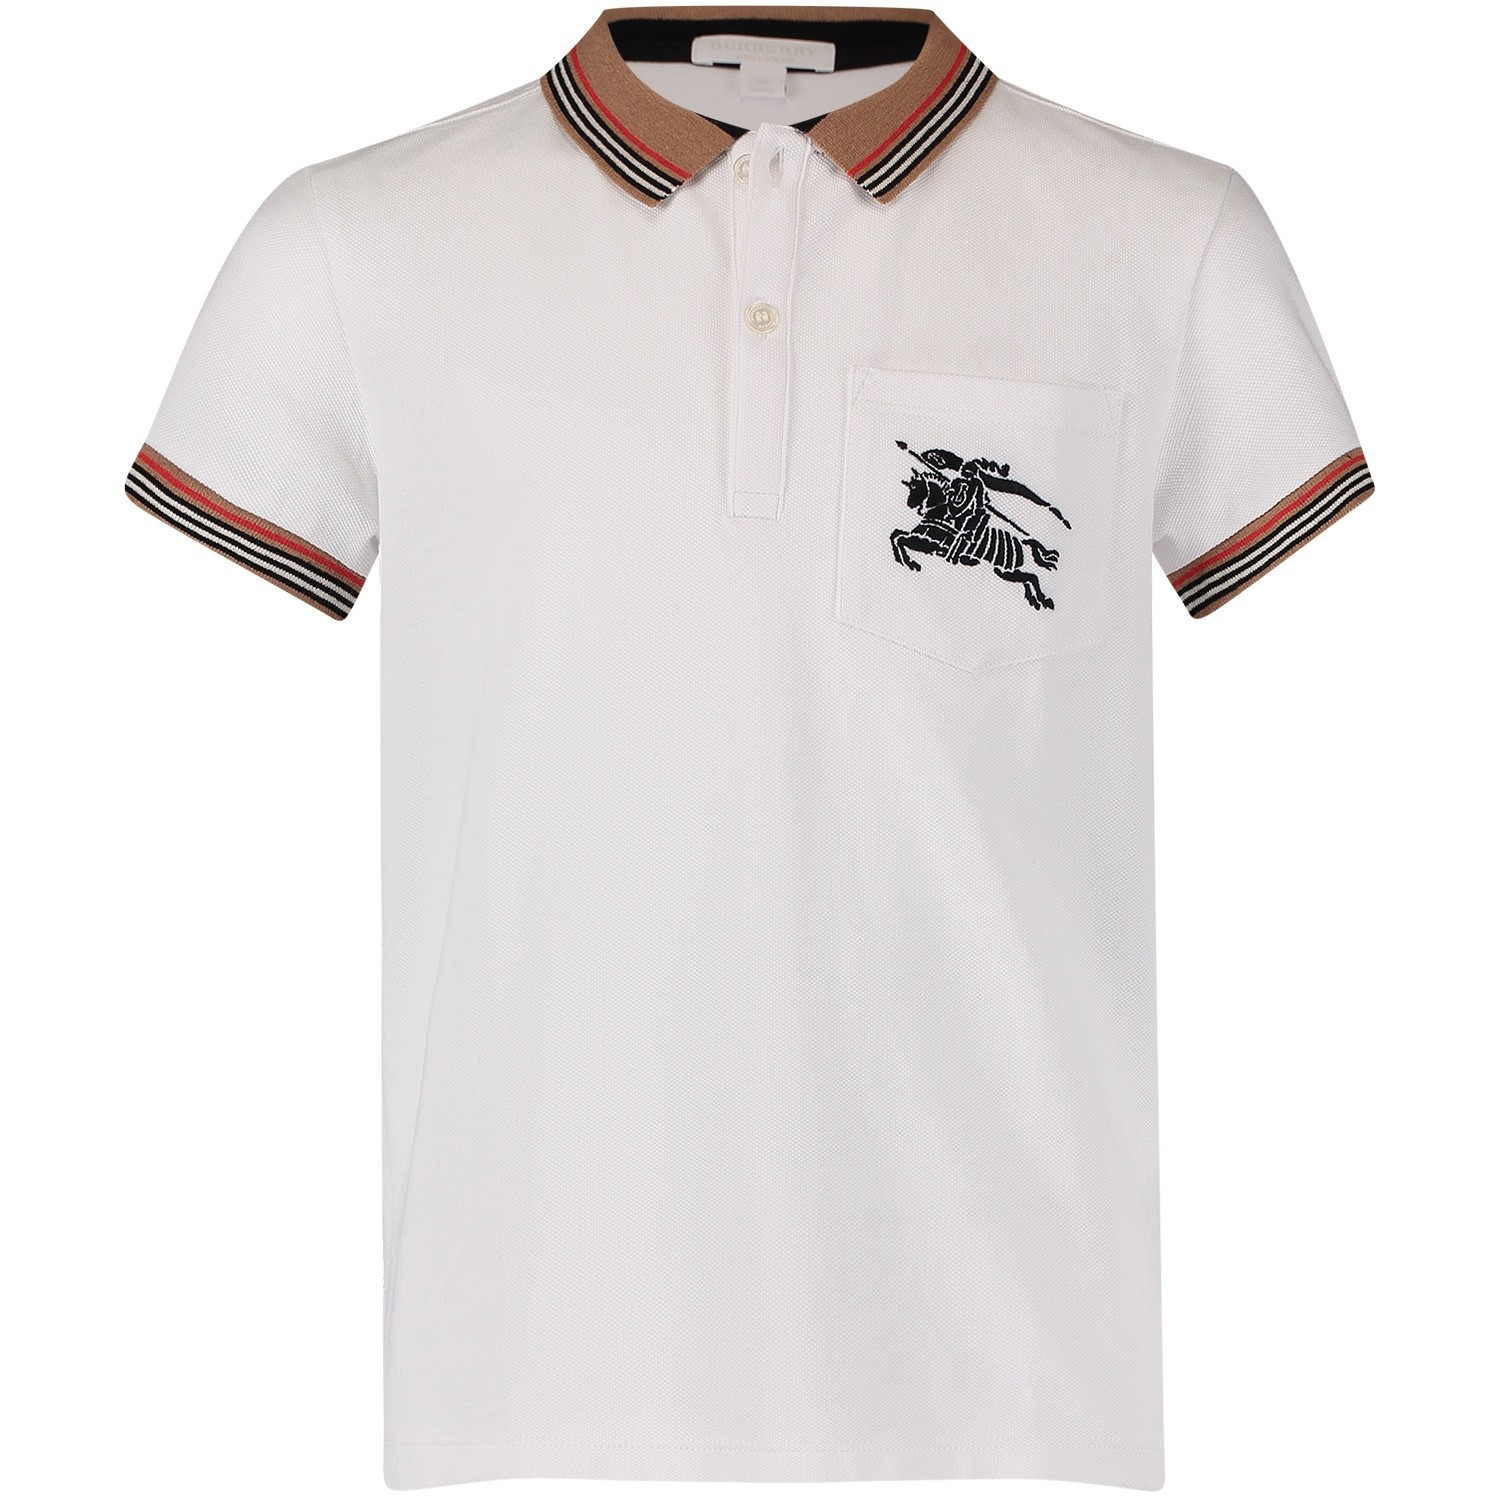 Picture of Burberry 8002848 kids polo shirt white